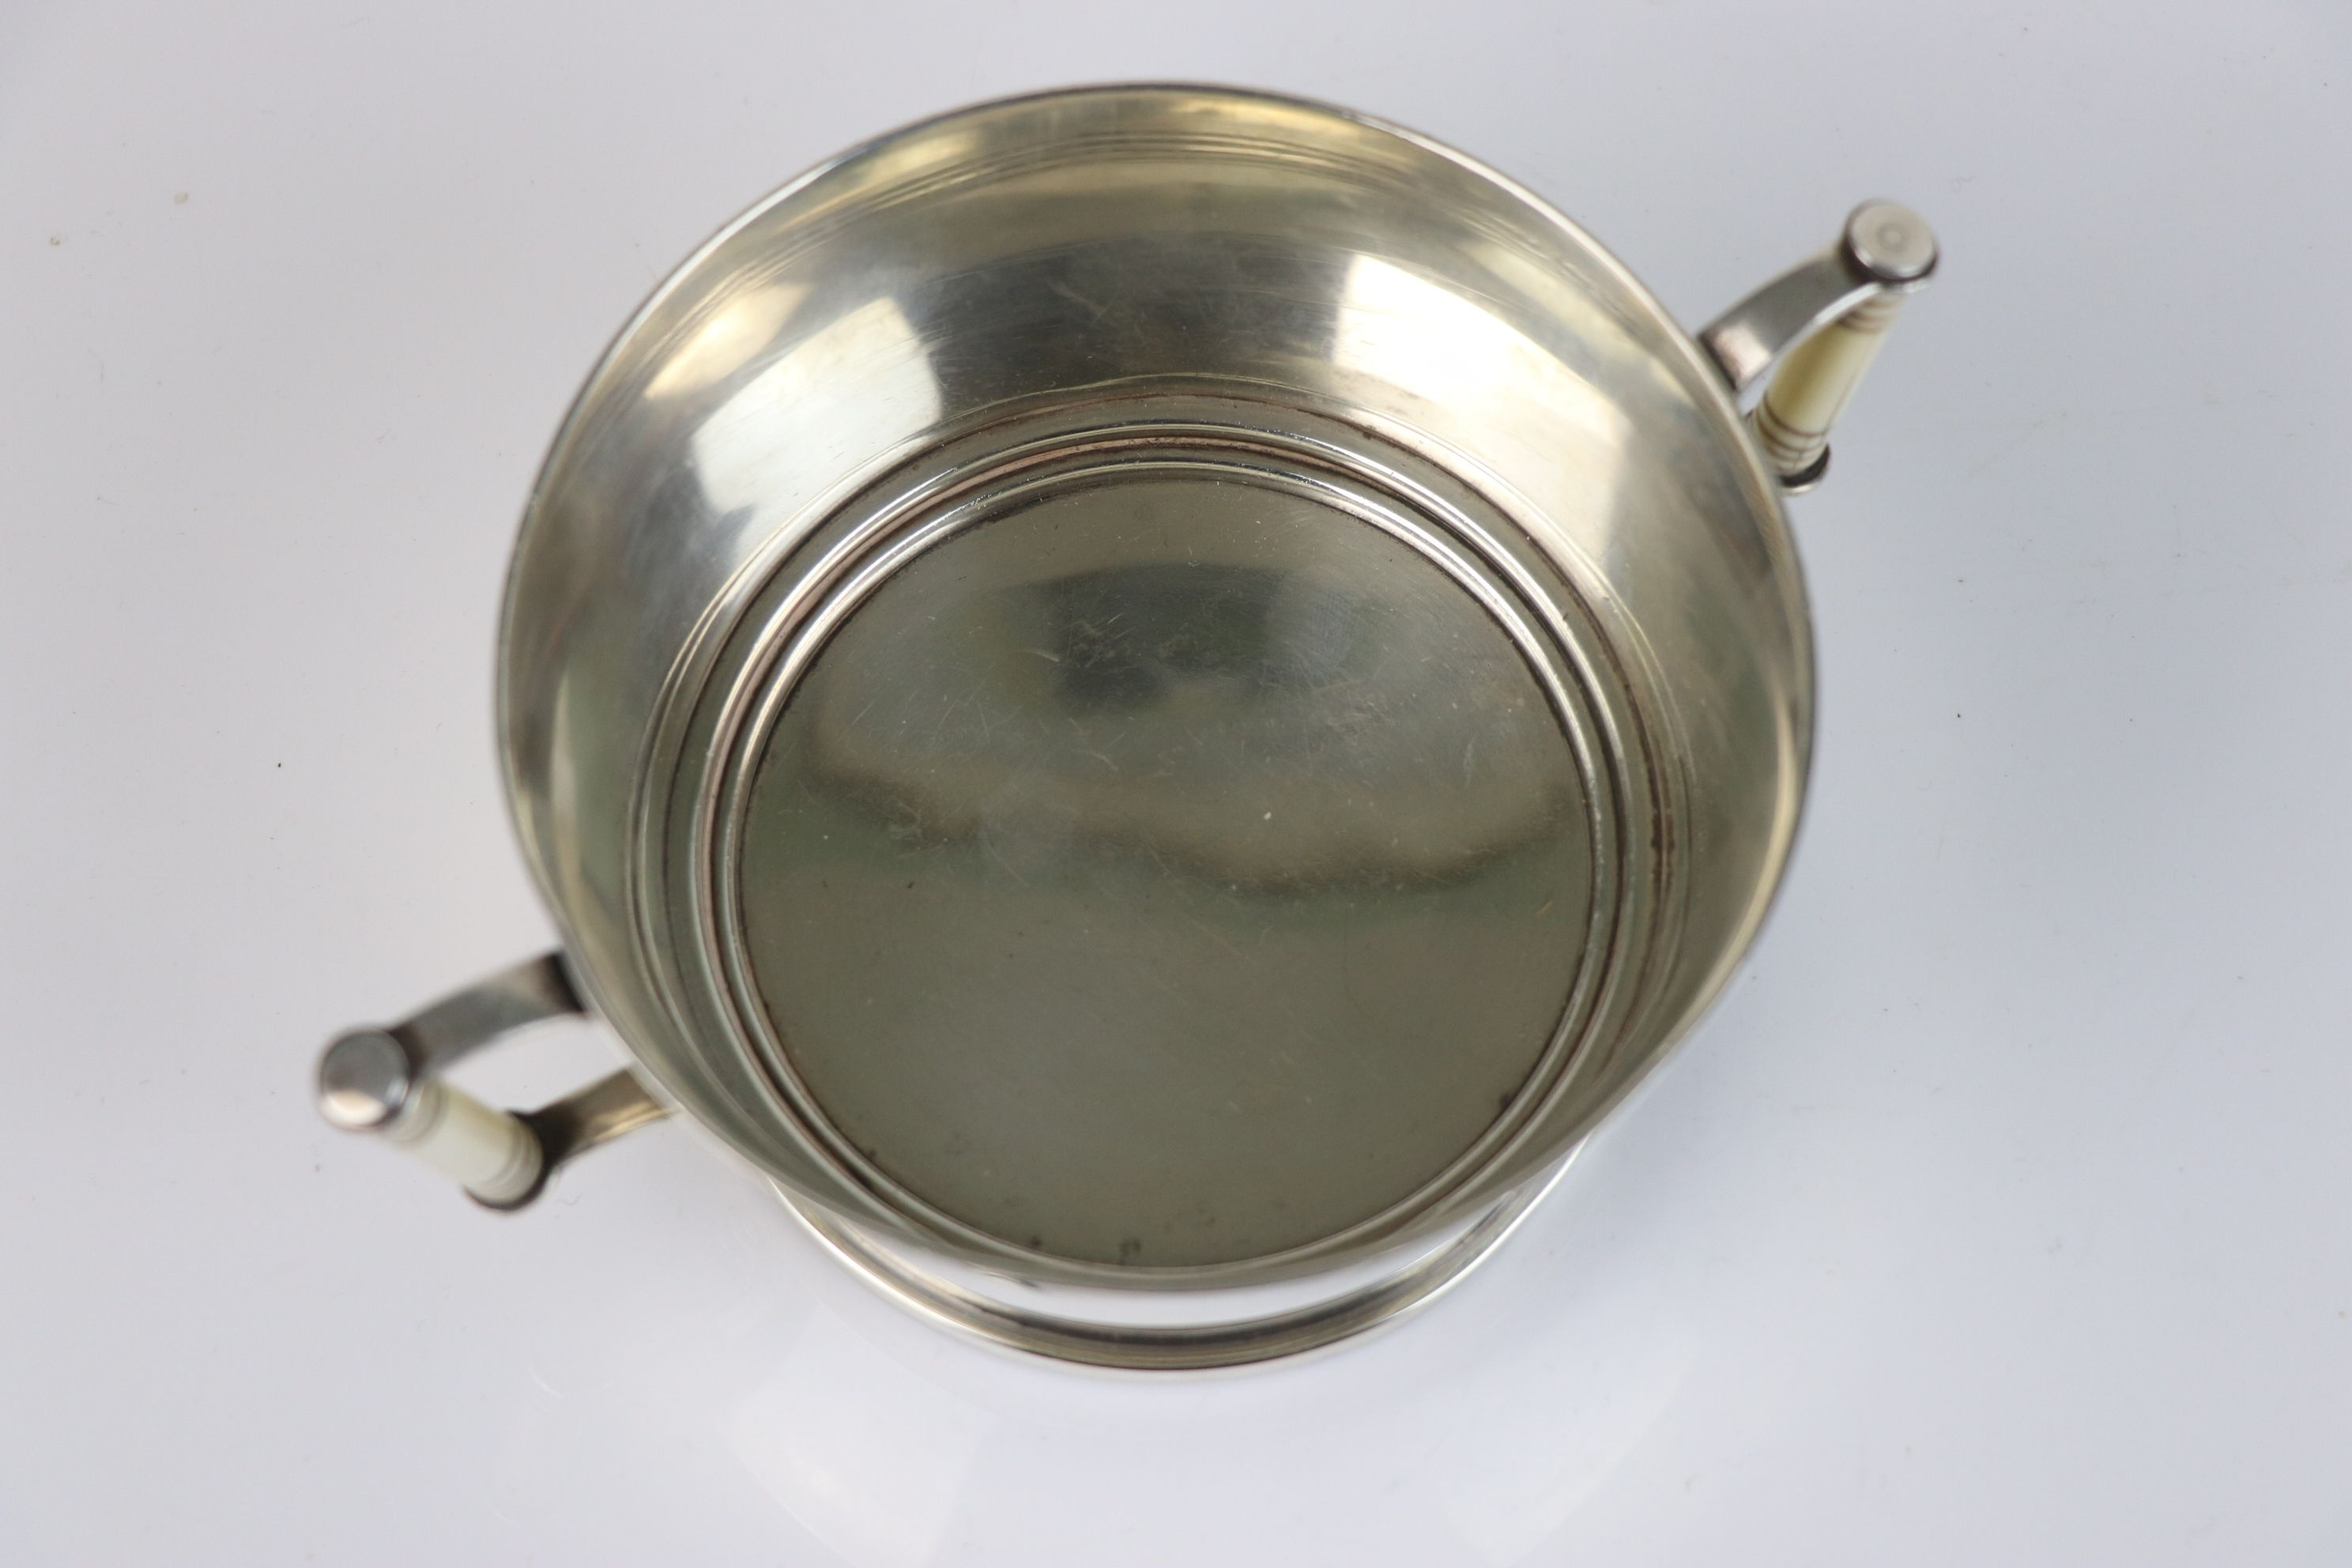 A fully hallmarked Britannia silver double handled christening cup with decorative ivory handles, - Image 4 of 5